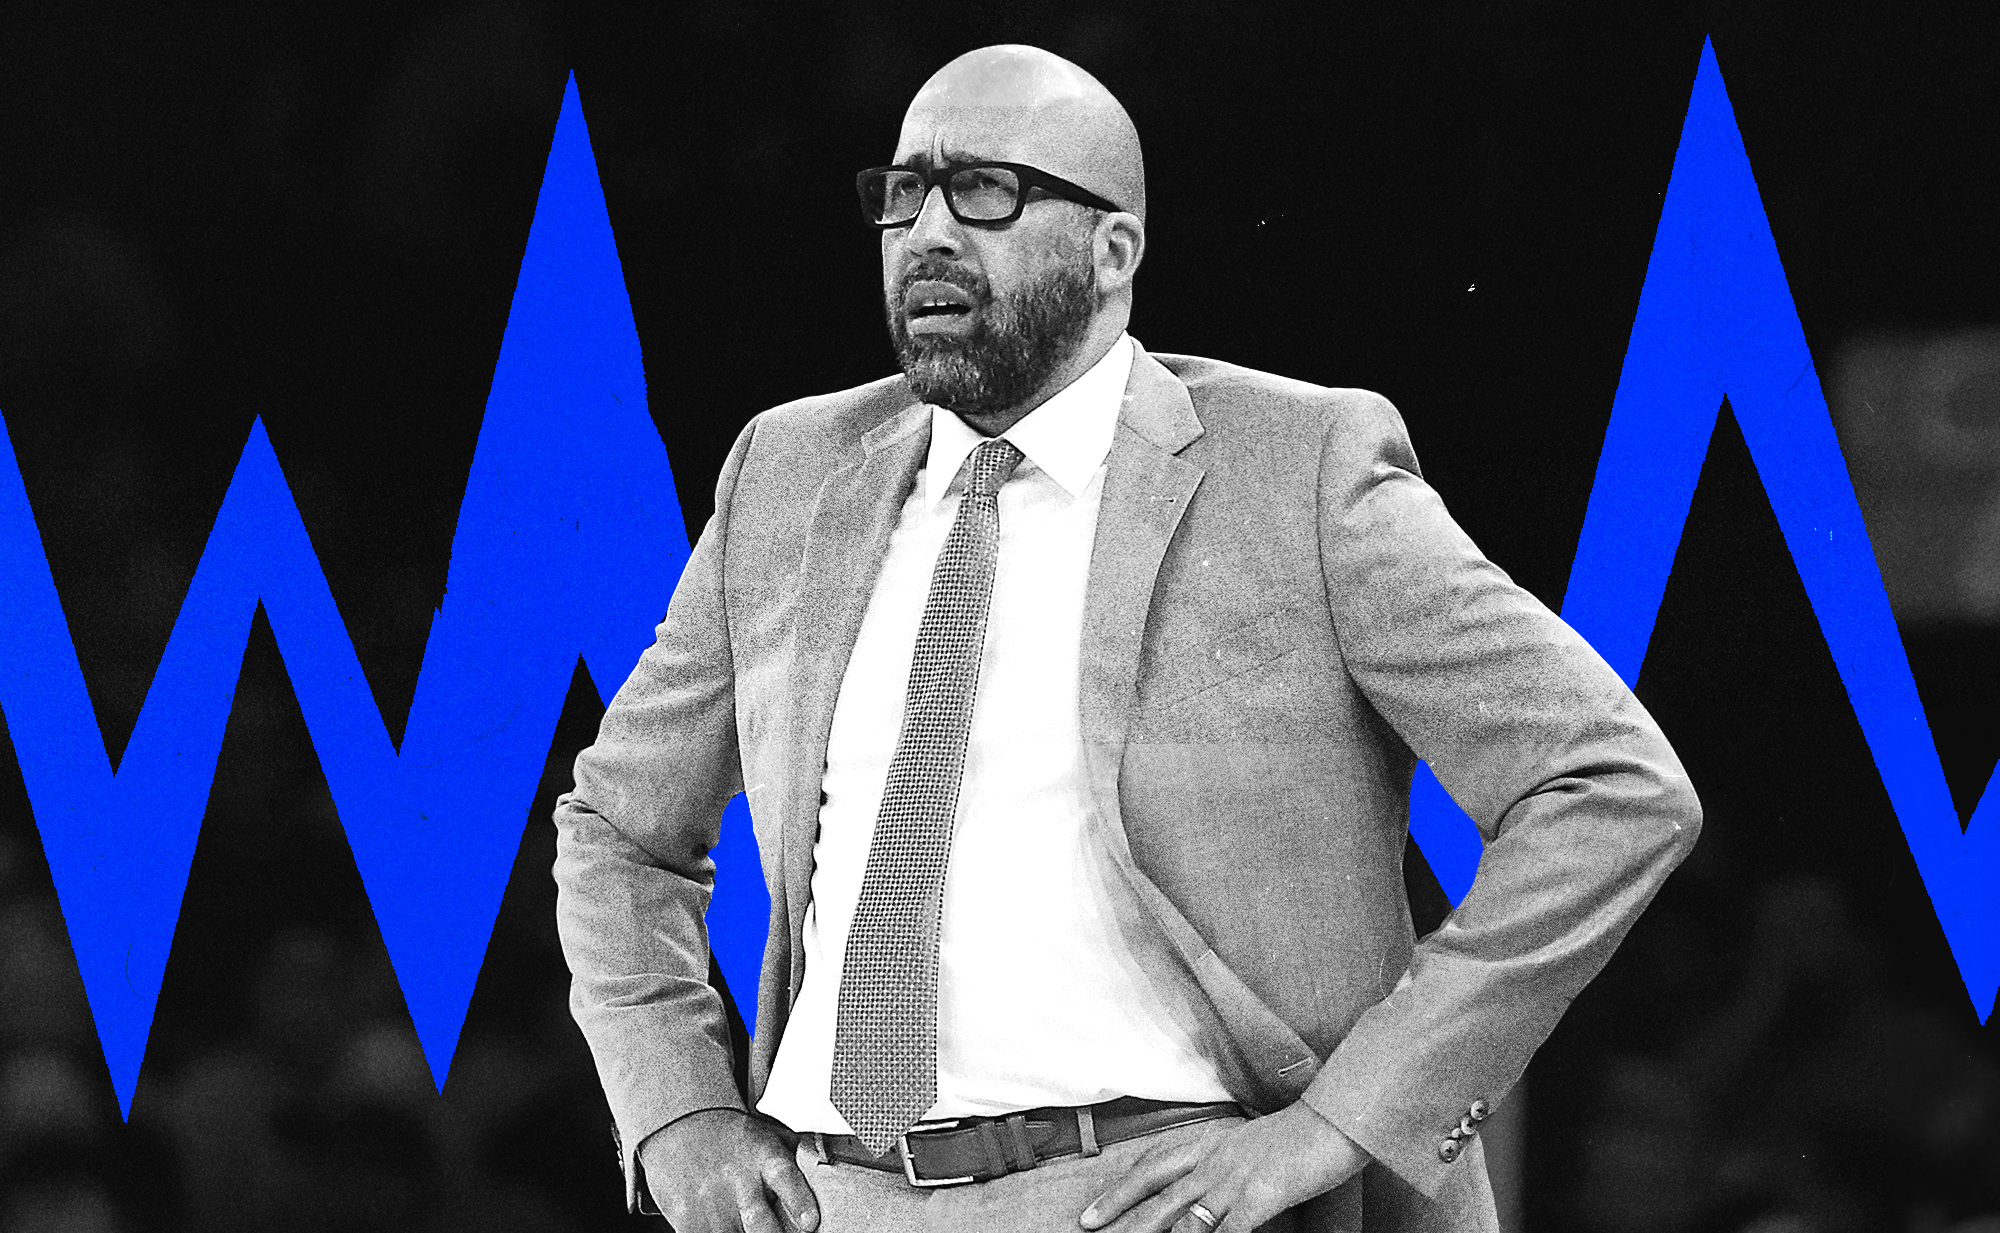 The Knicks set themselves up for failure